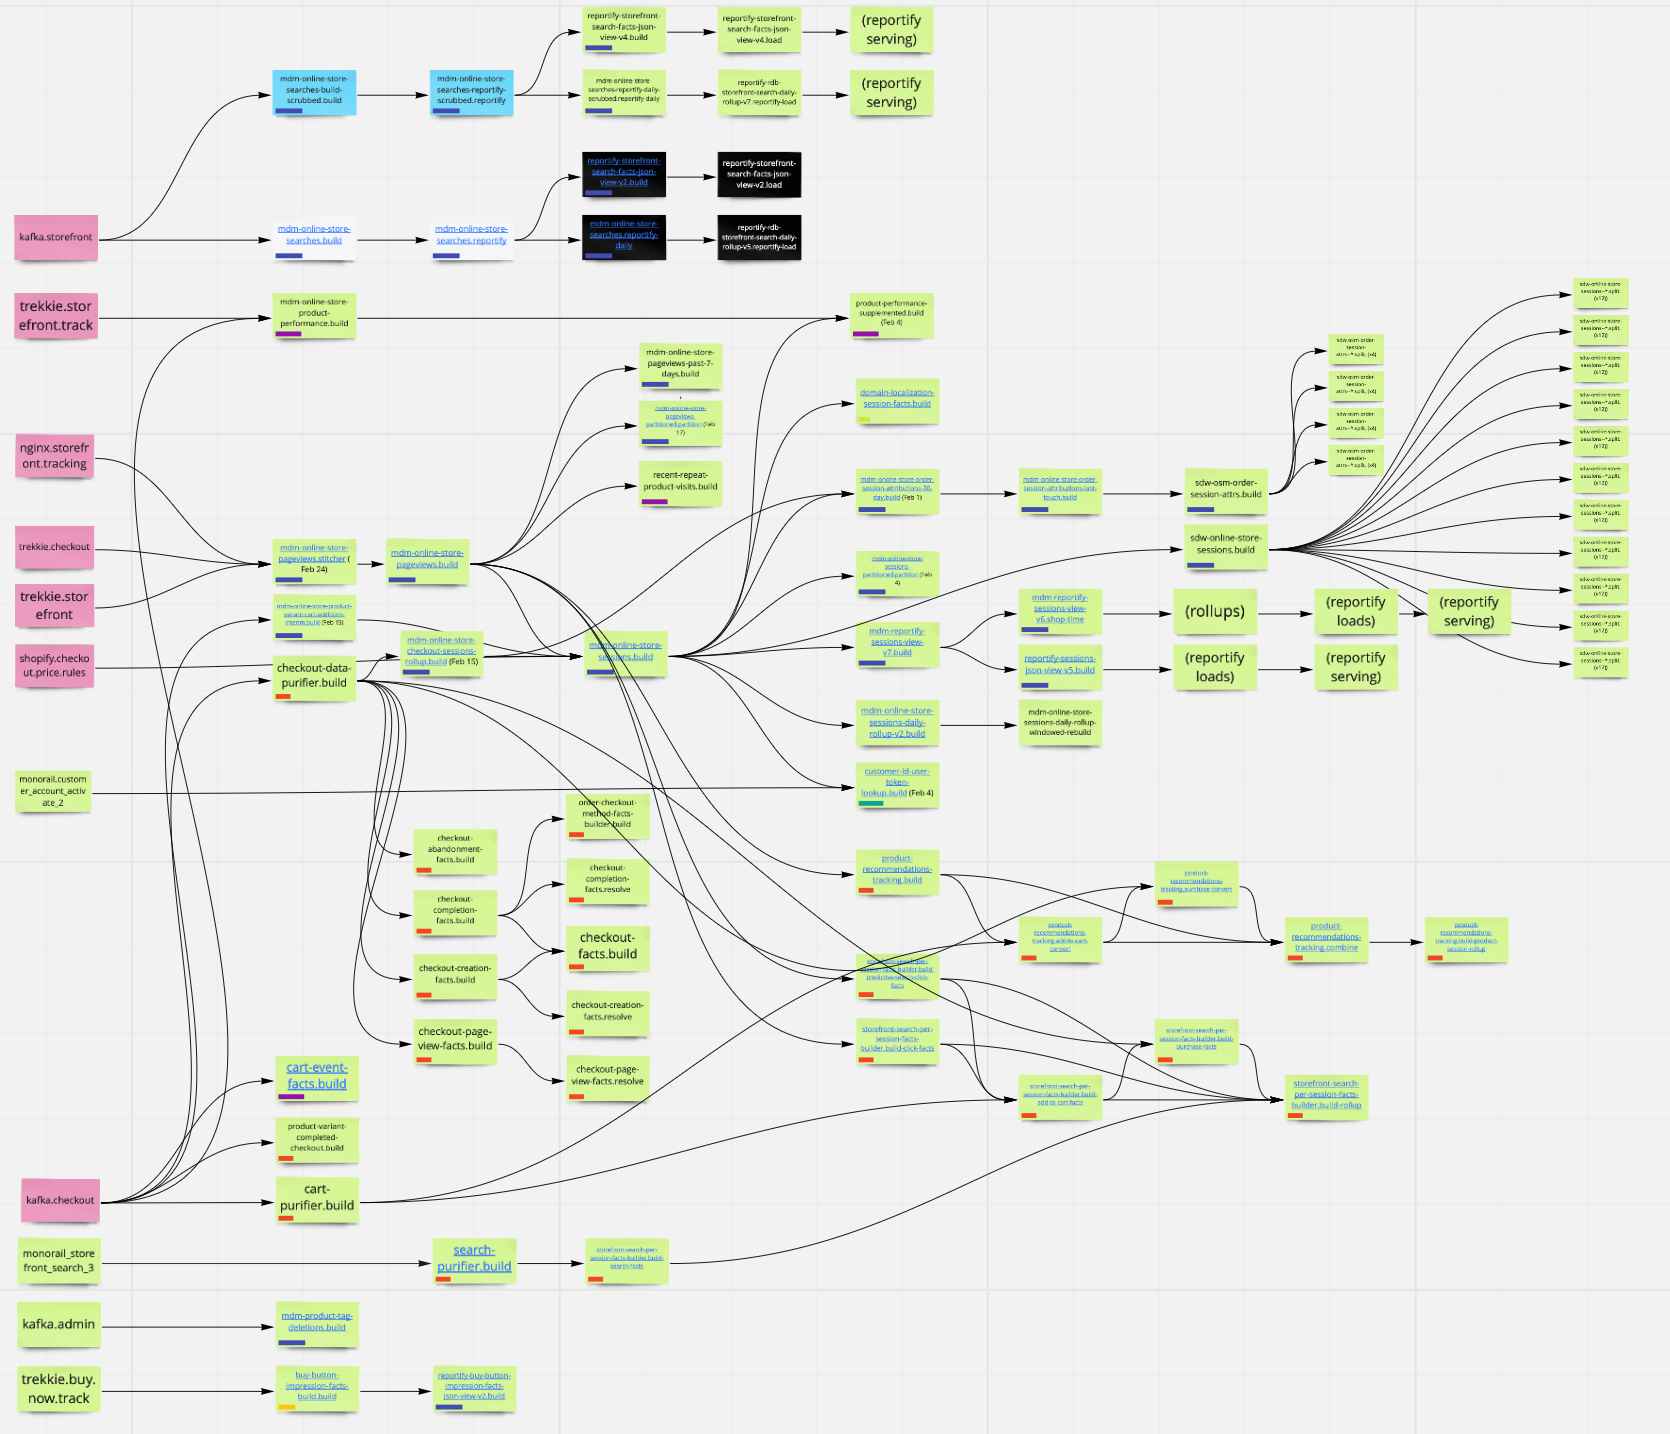 A dependency graph showing a partial view of interdependency between analytical jobs. The graph is large and has many branches represented by green, pink, black, blue, and white boxes. Numerous black lines terminating with arrows connect the dependencies.